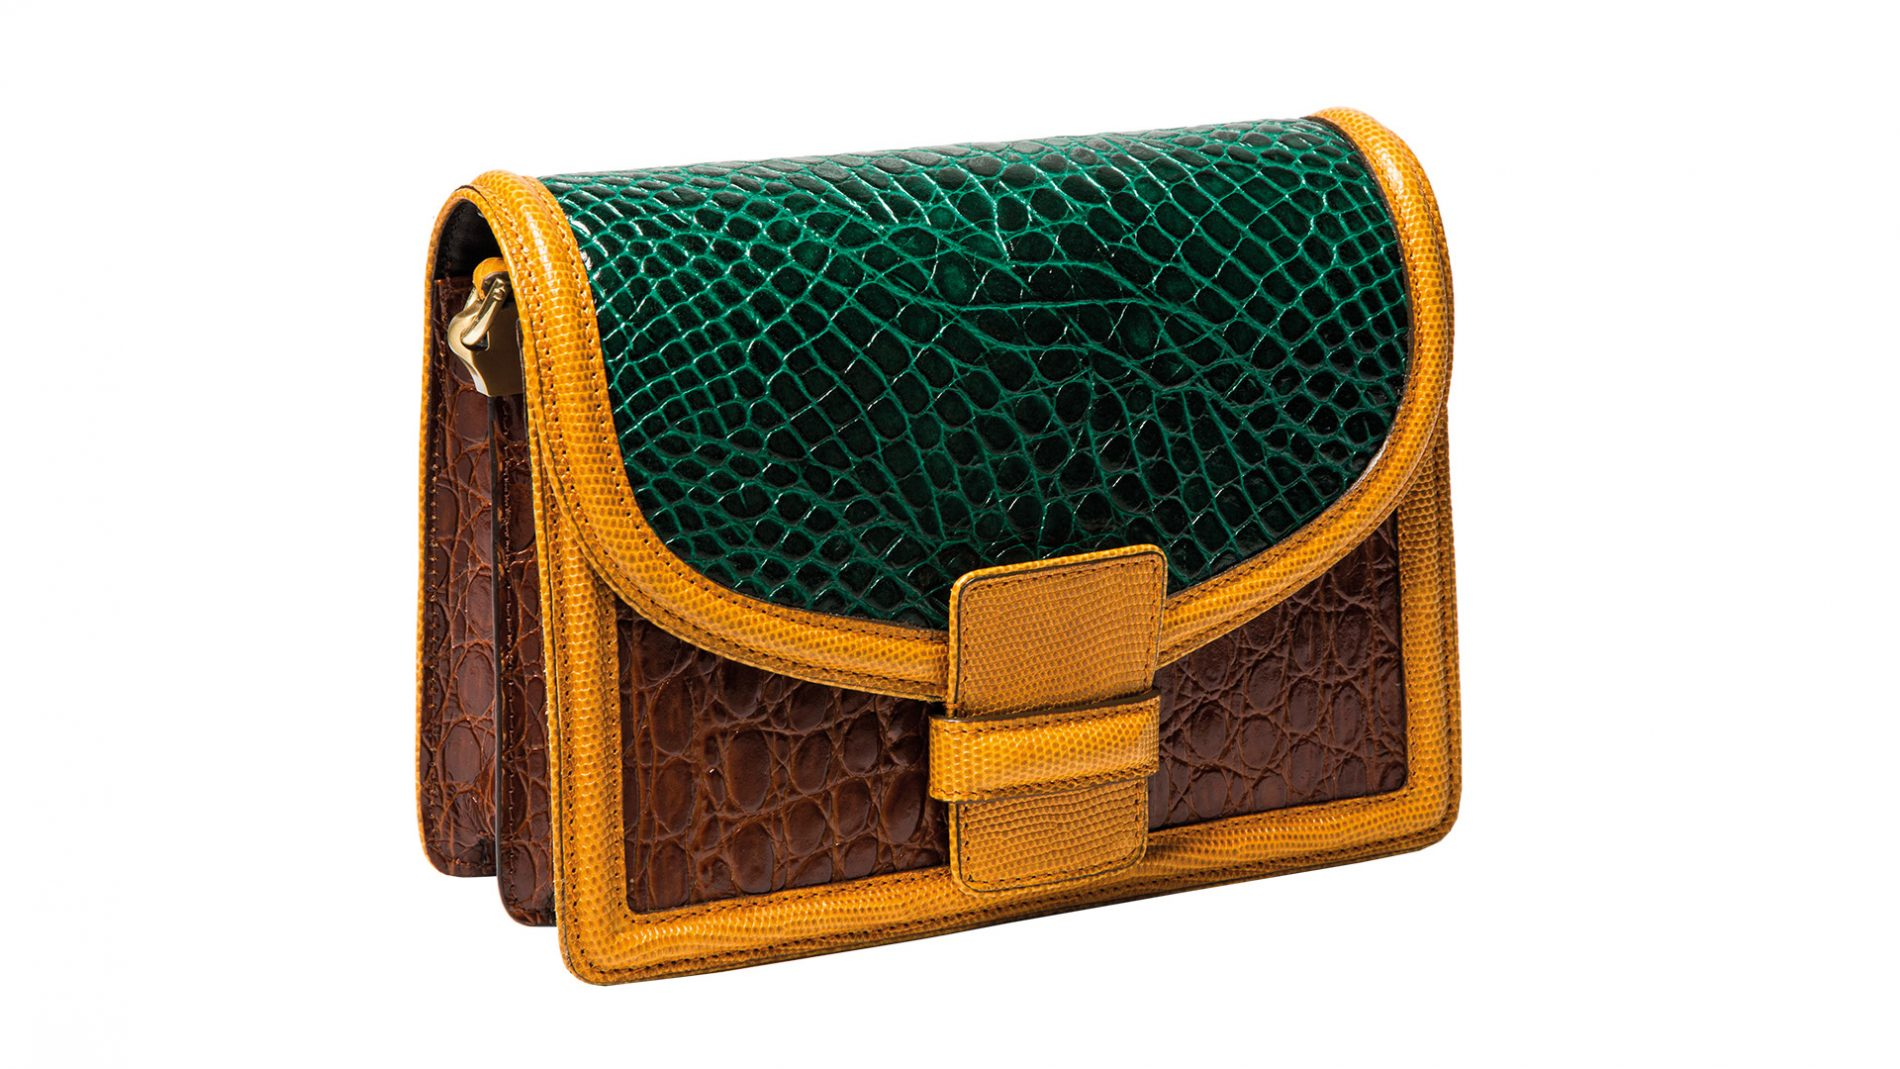 El Corte Inglés Designer Handbags Dries Van Noten